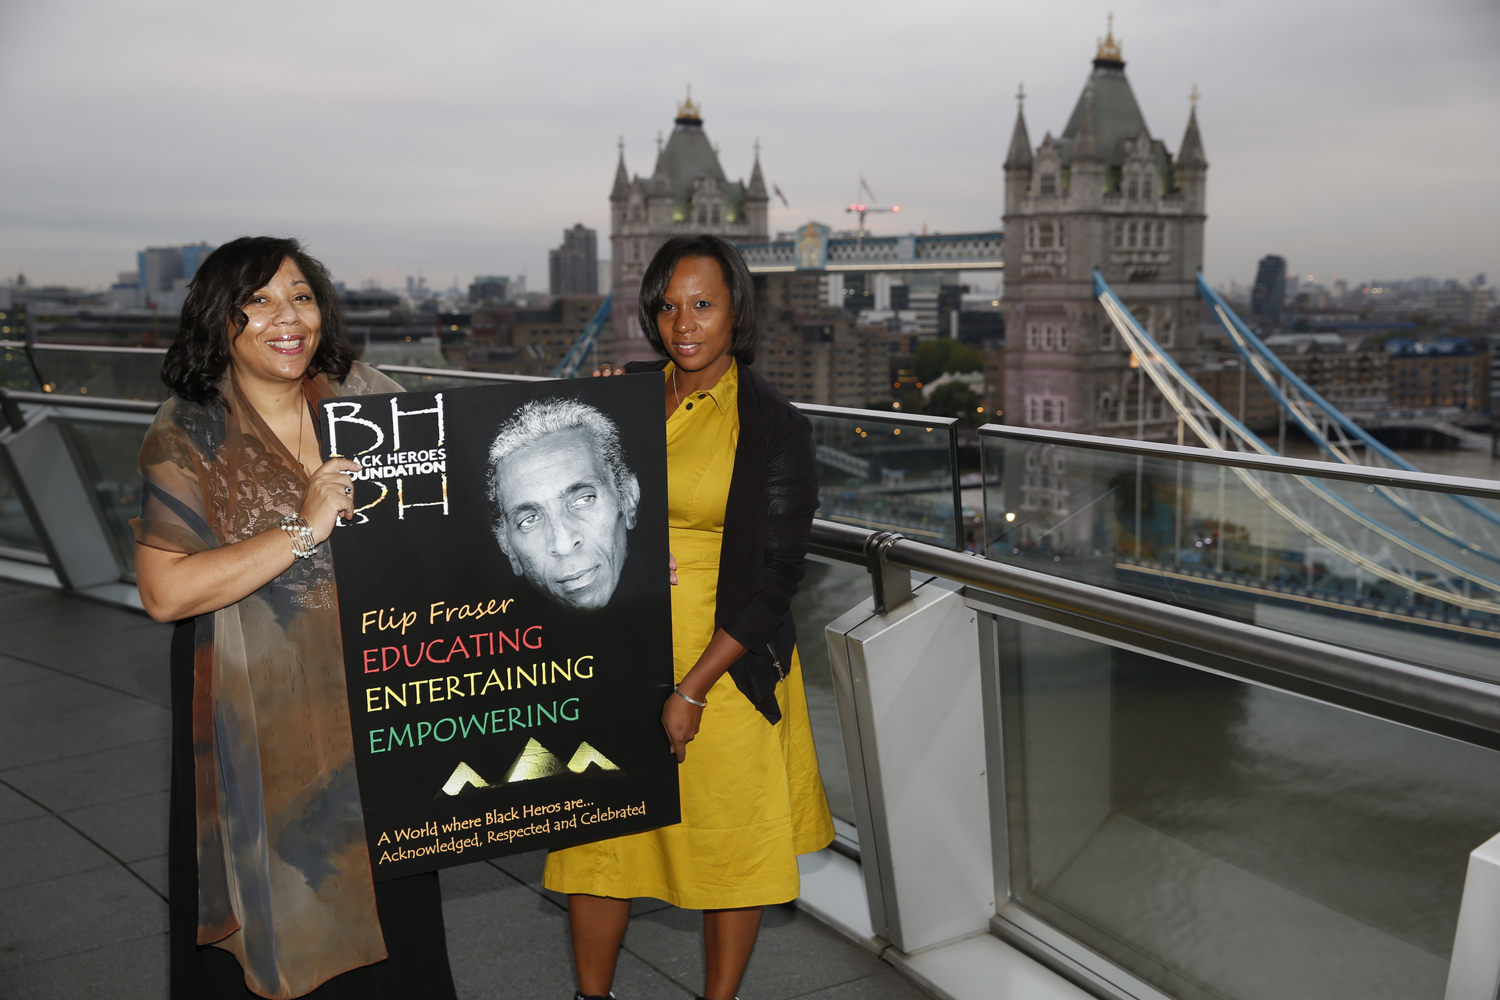 The launch of Black Heroes Foundation at City Hall